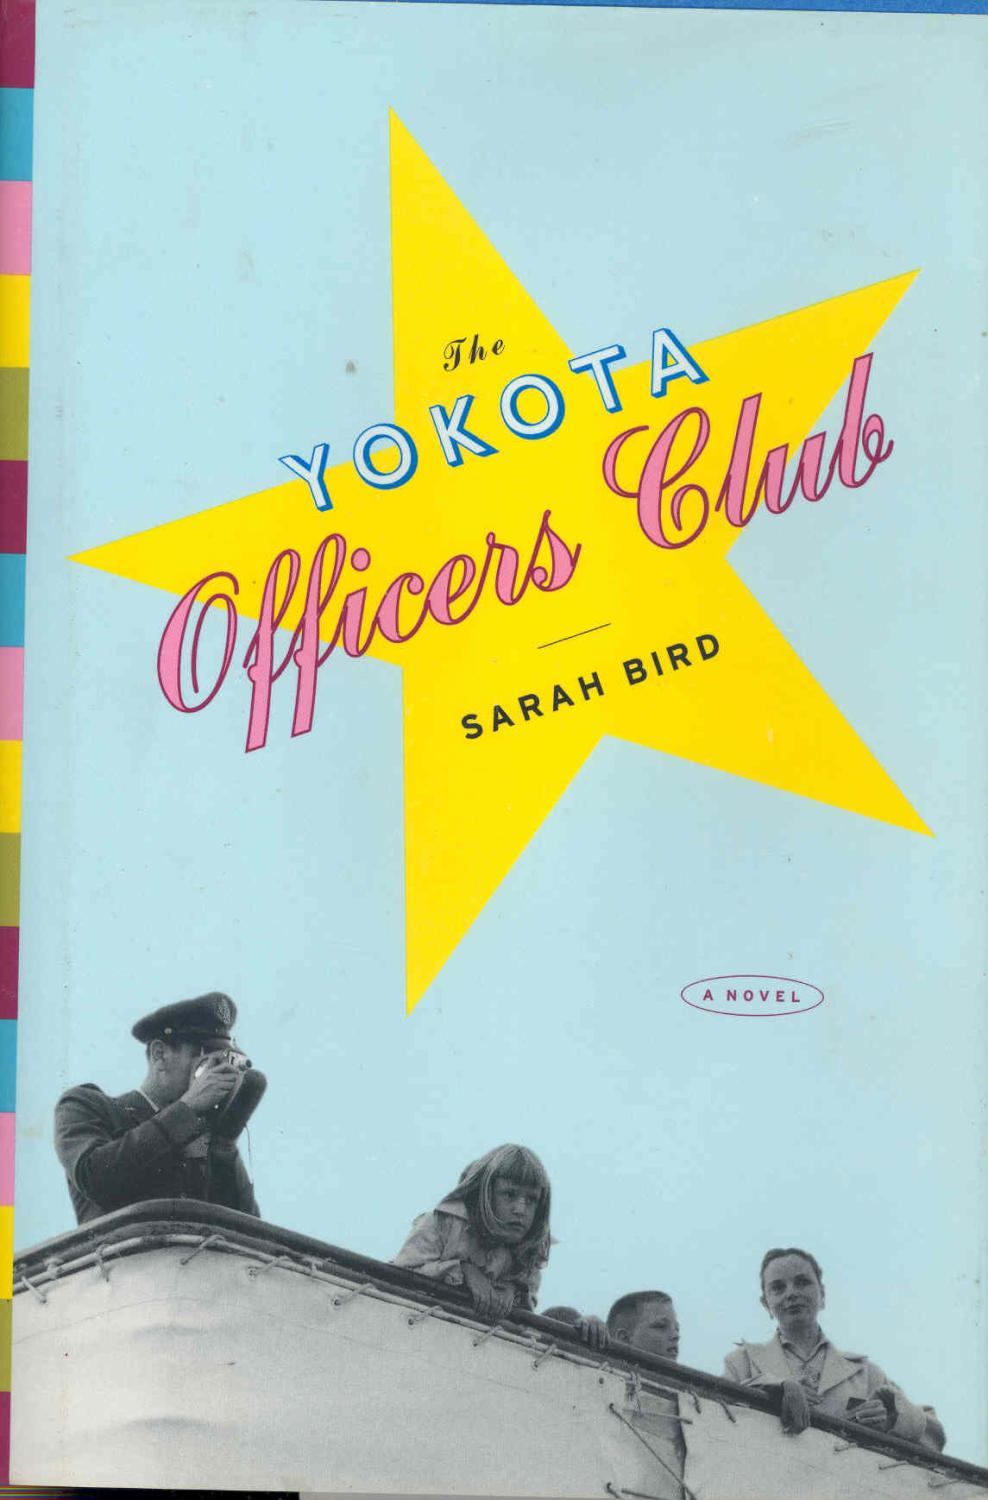 The Yokota Officers Club : a novel - Bird, Sarah.